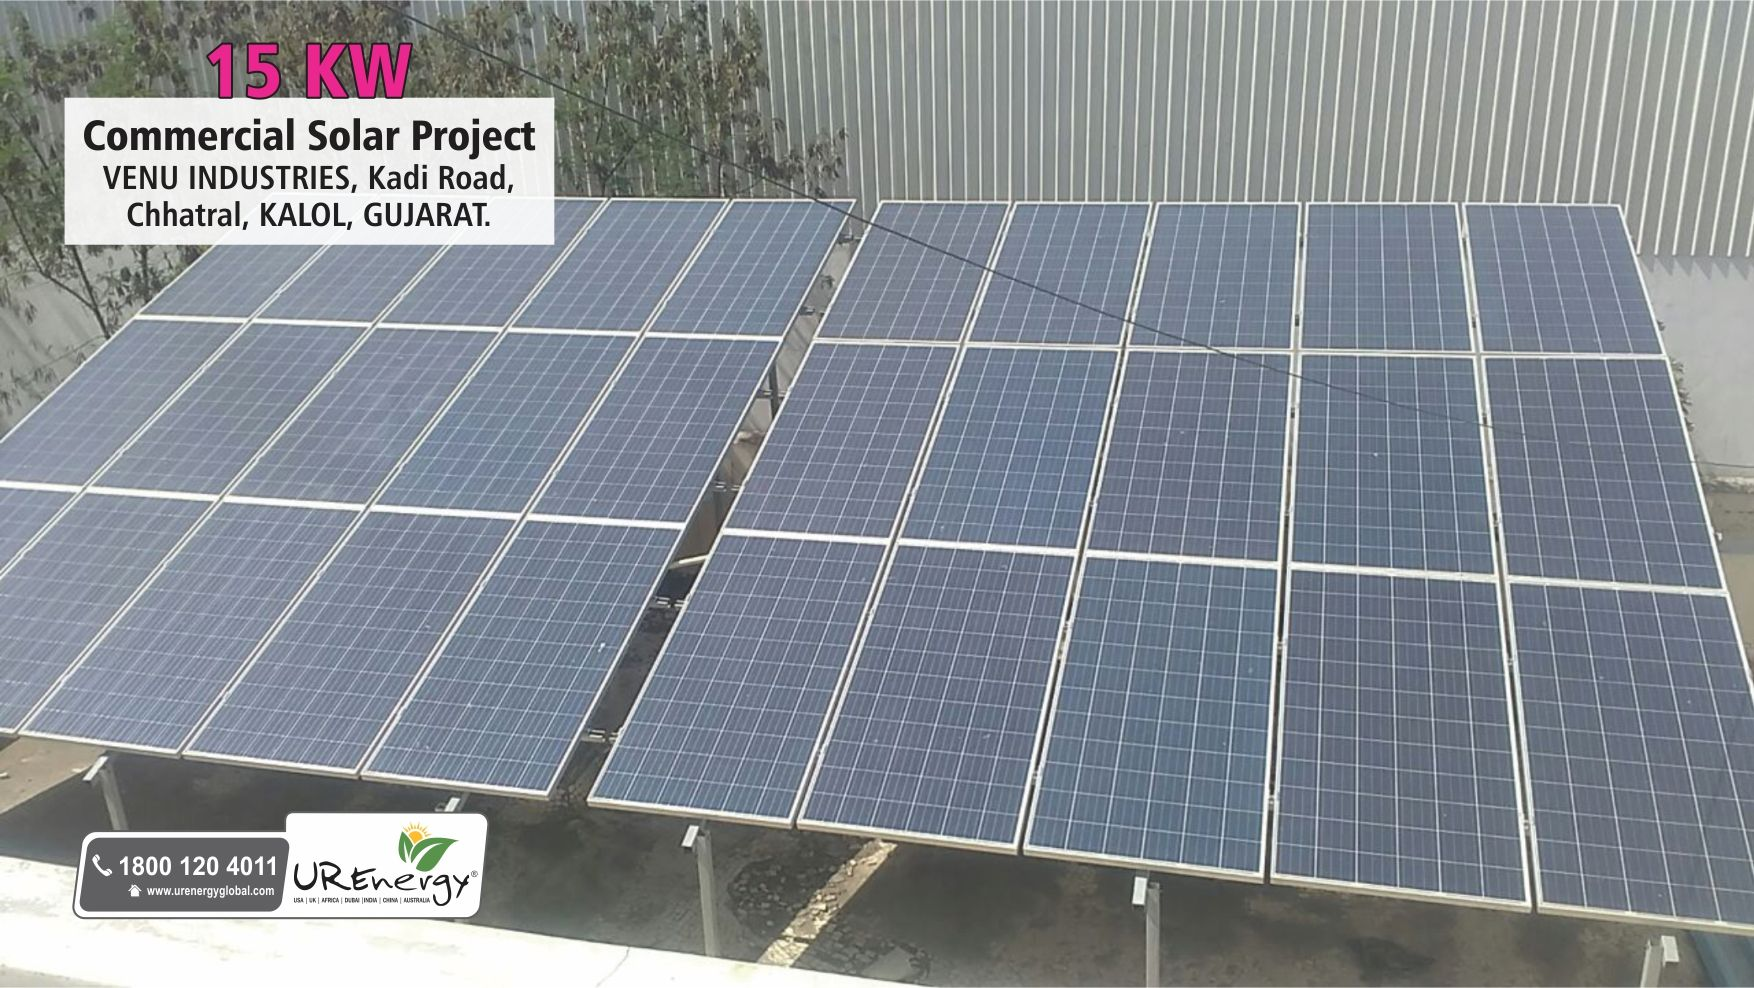 15 Kw Commercial Solar Panel System Installed By U R Energy India Pvt Ltd Commercial Residential Epc Solar Solar Solar Projects Solar Heating